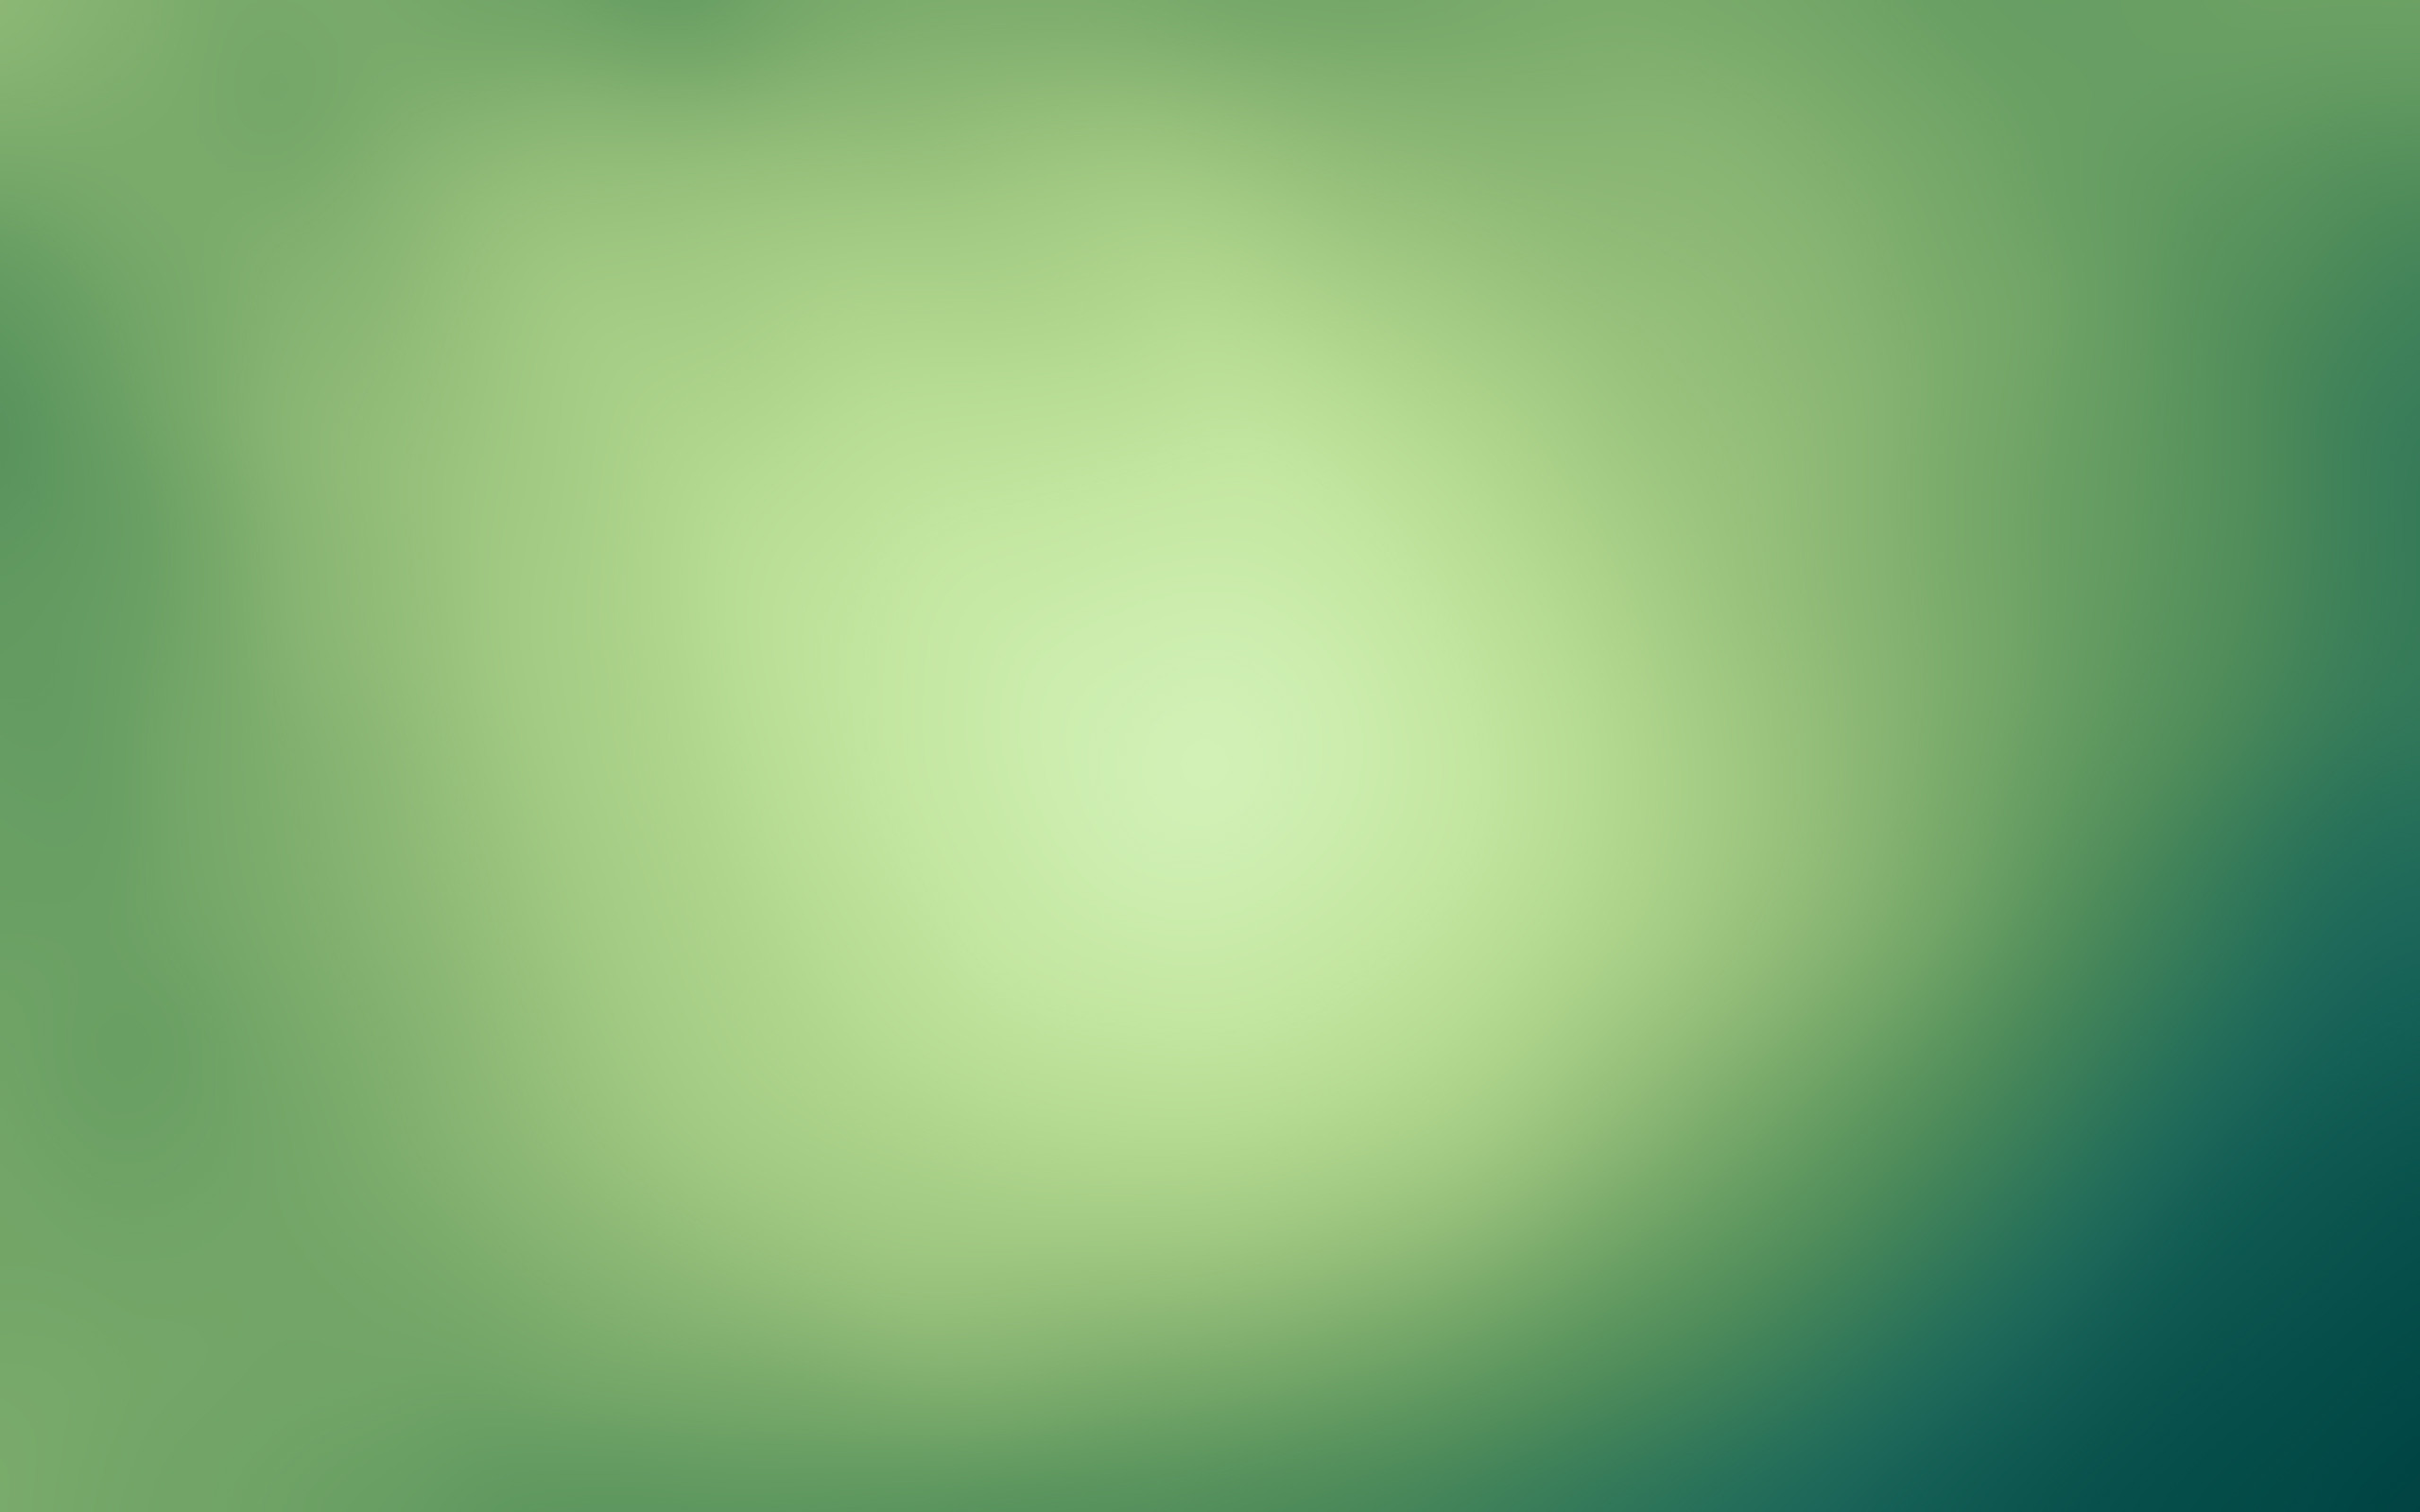 Free Solid Color Backgrounds   Green Color, Lightness and Darkness Differs,  Single Color Wallpaper